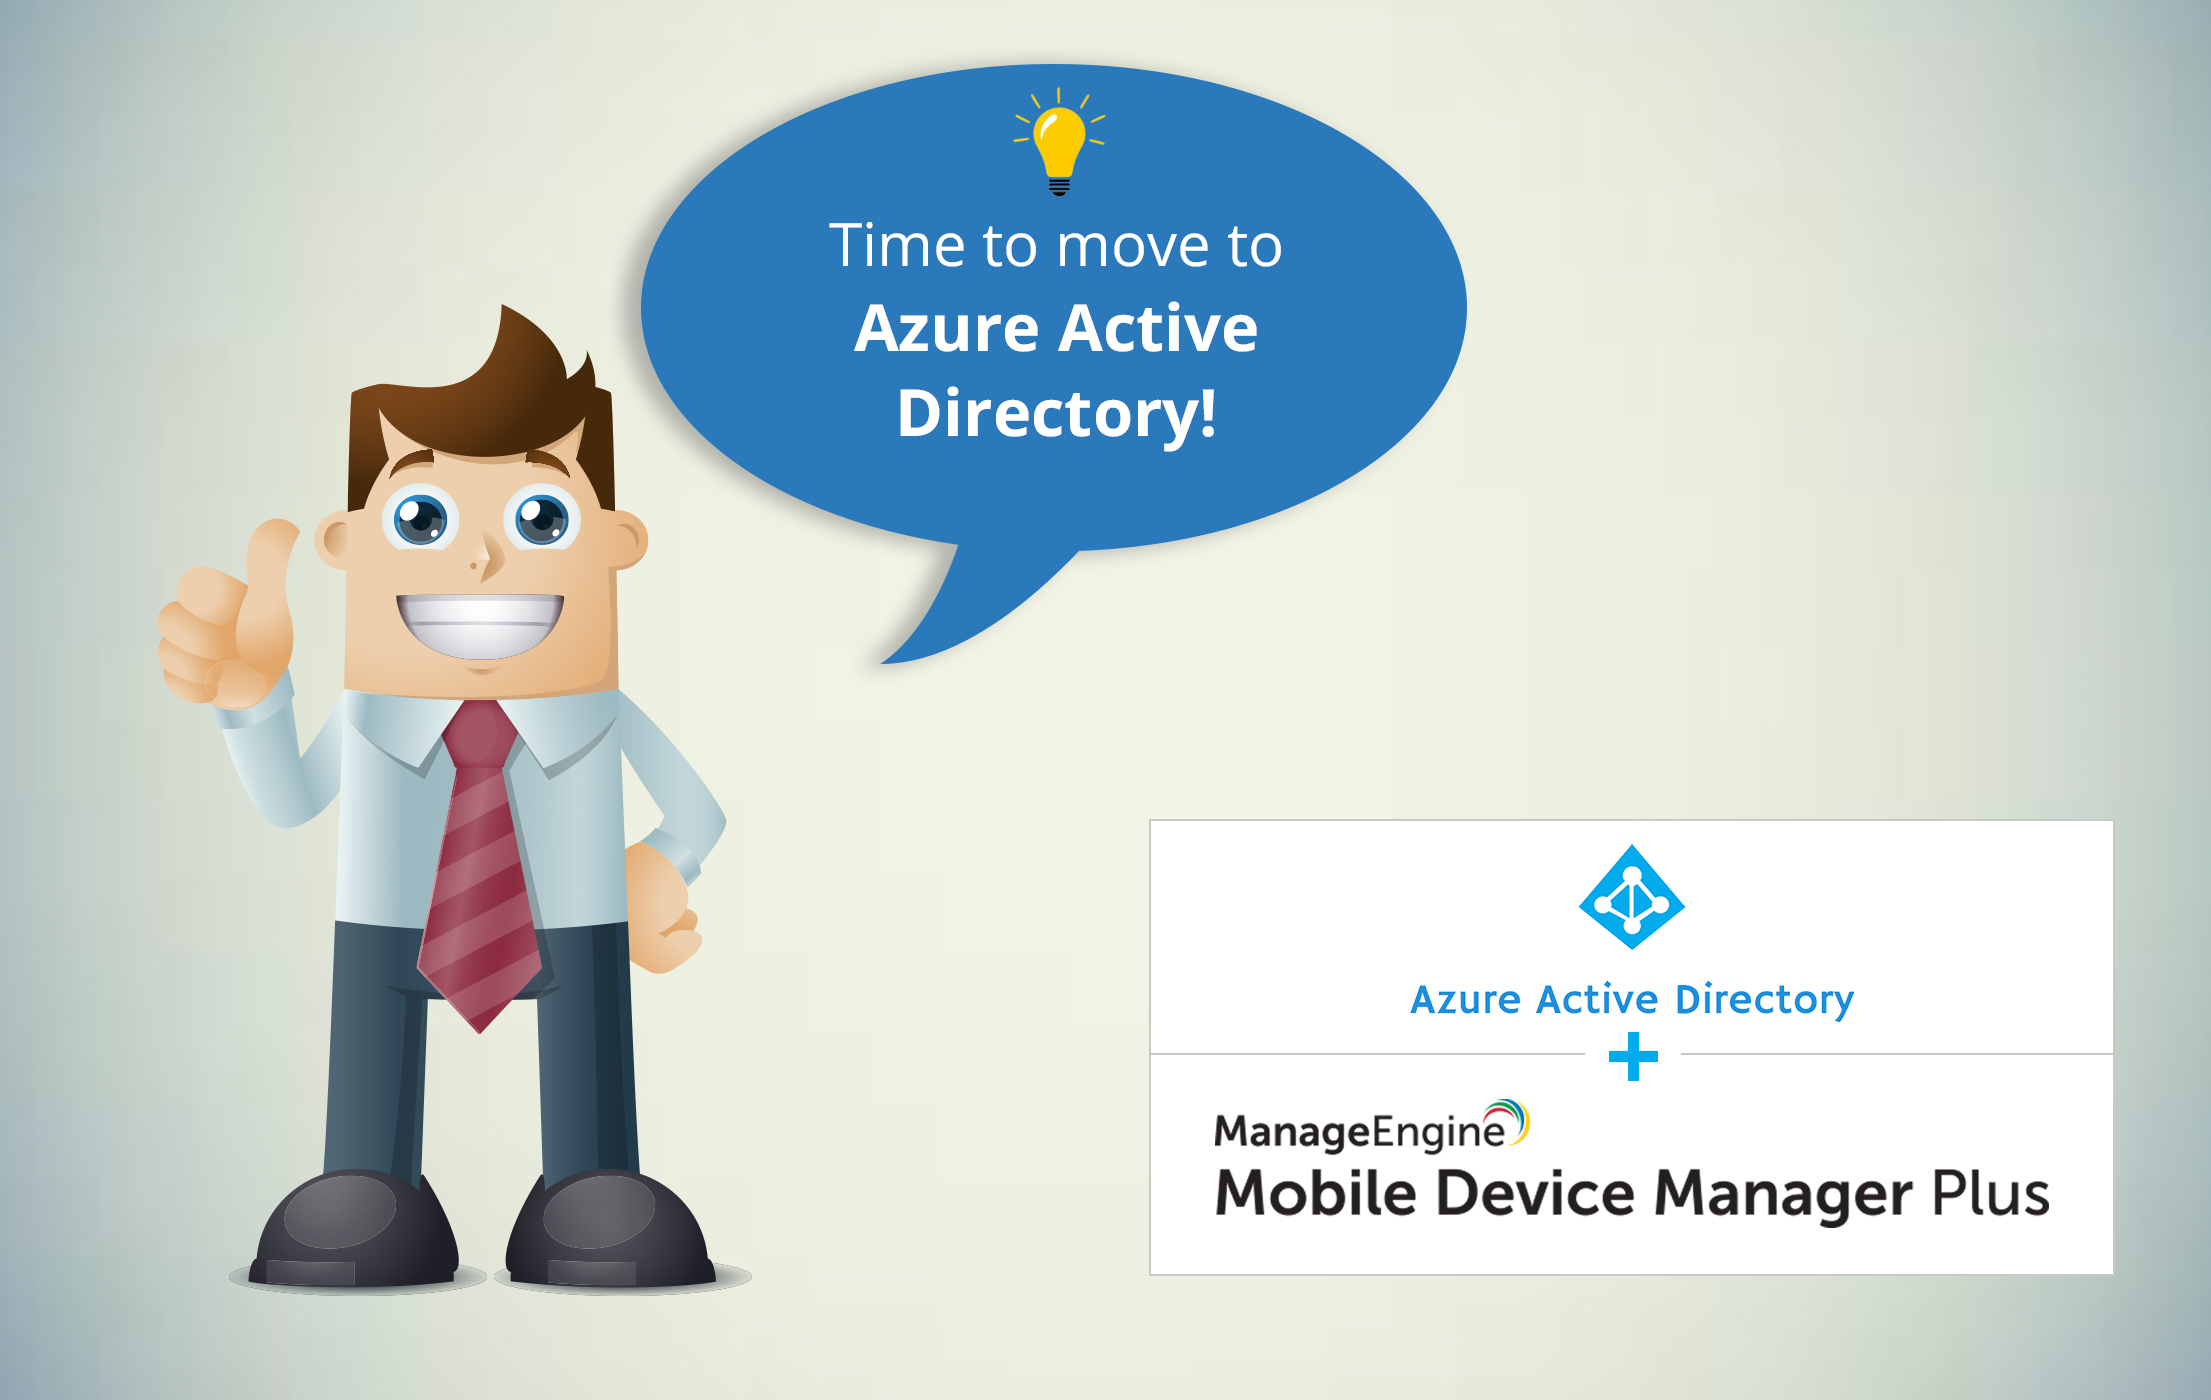 Using Azure Active Directory ? We've got you covered